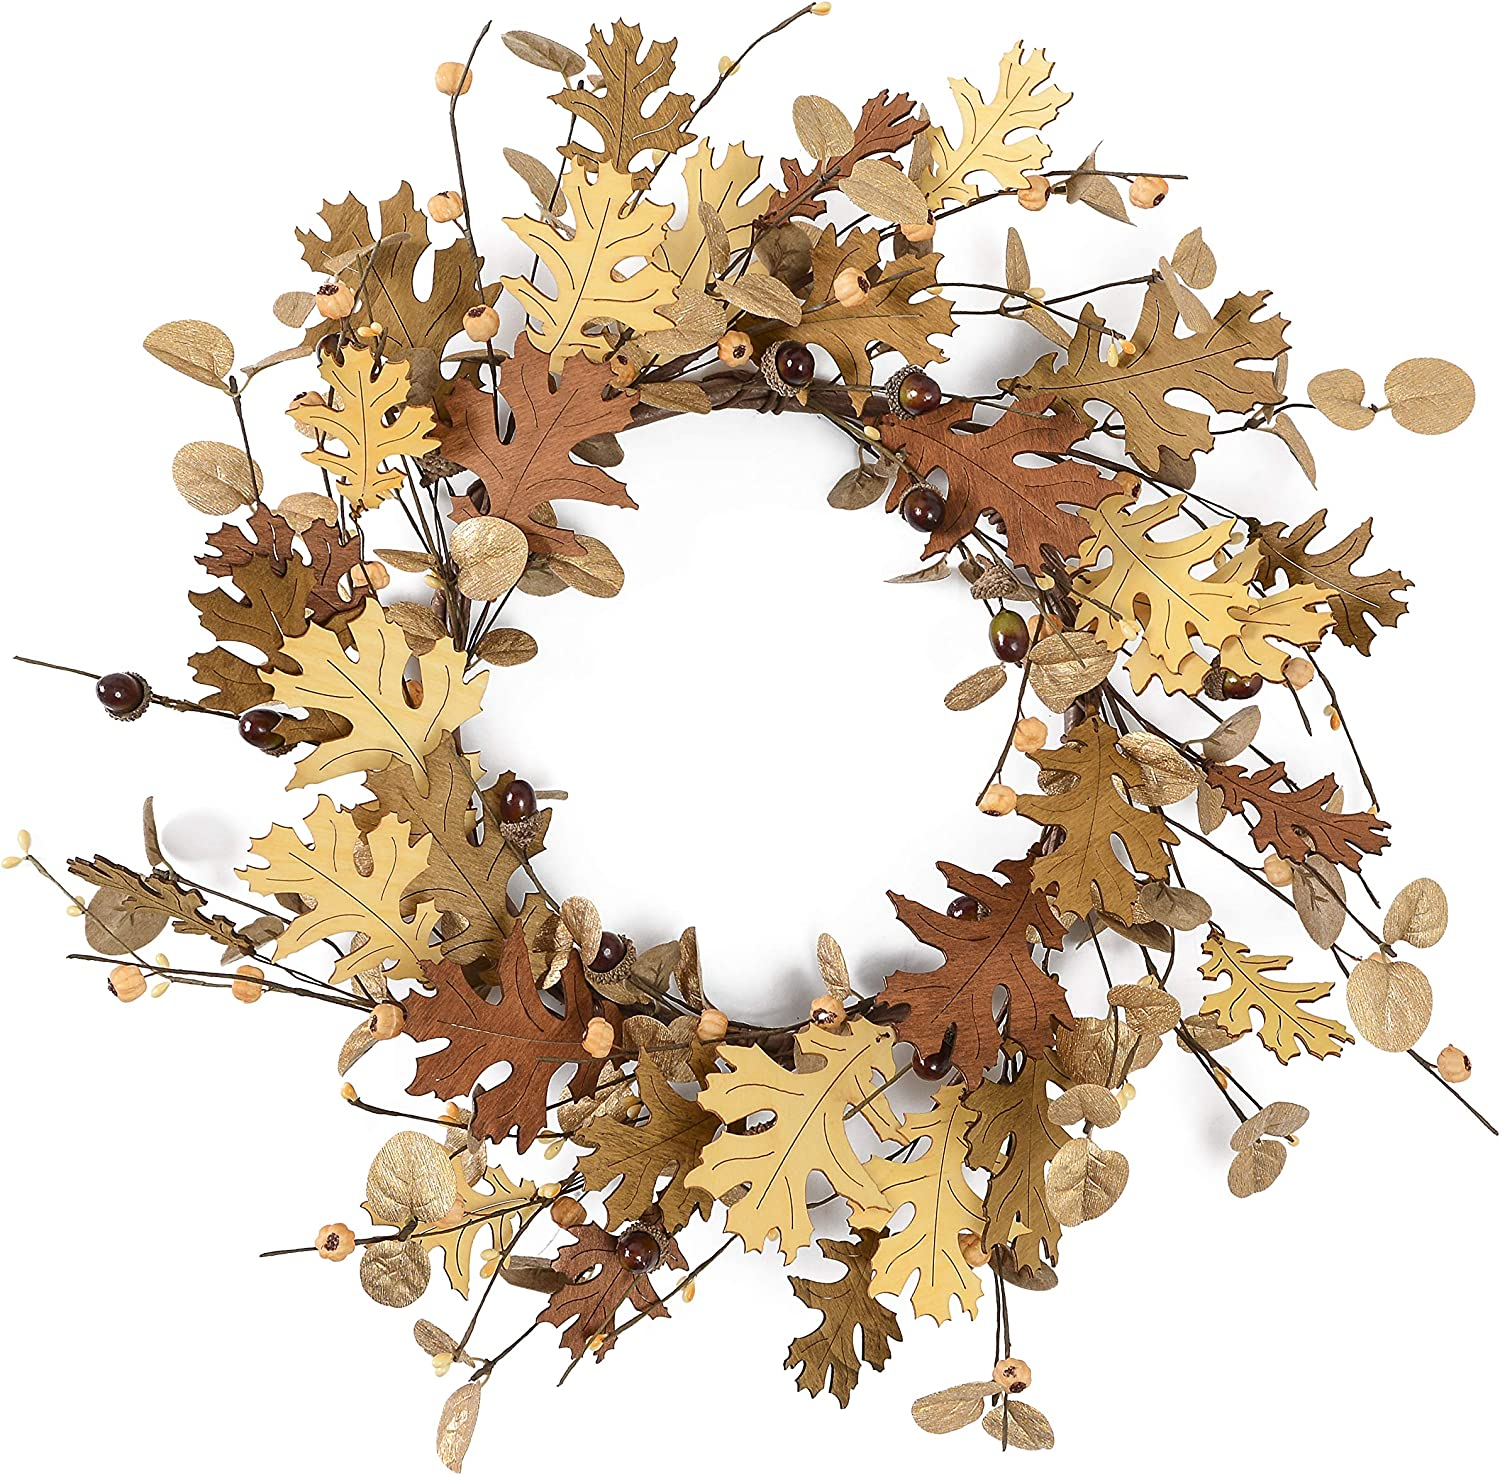 "YNYLCHMX Fall Wreaths for Front Door, 18"" Artificial Thanksgiving Wreath Golden Eucalputs Leaves with Small Pumpkin Modern Rustic Farmhouse Wreath, Garland for Hanging Window Wall Decorations"